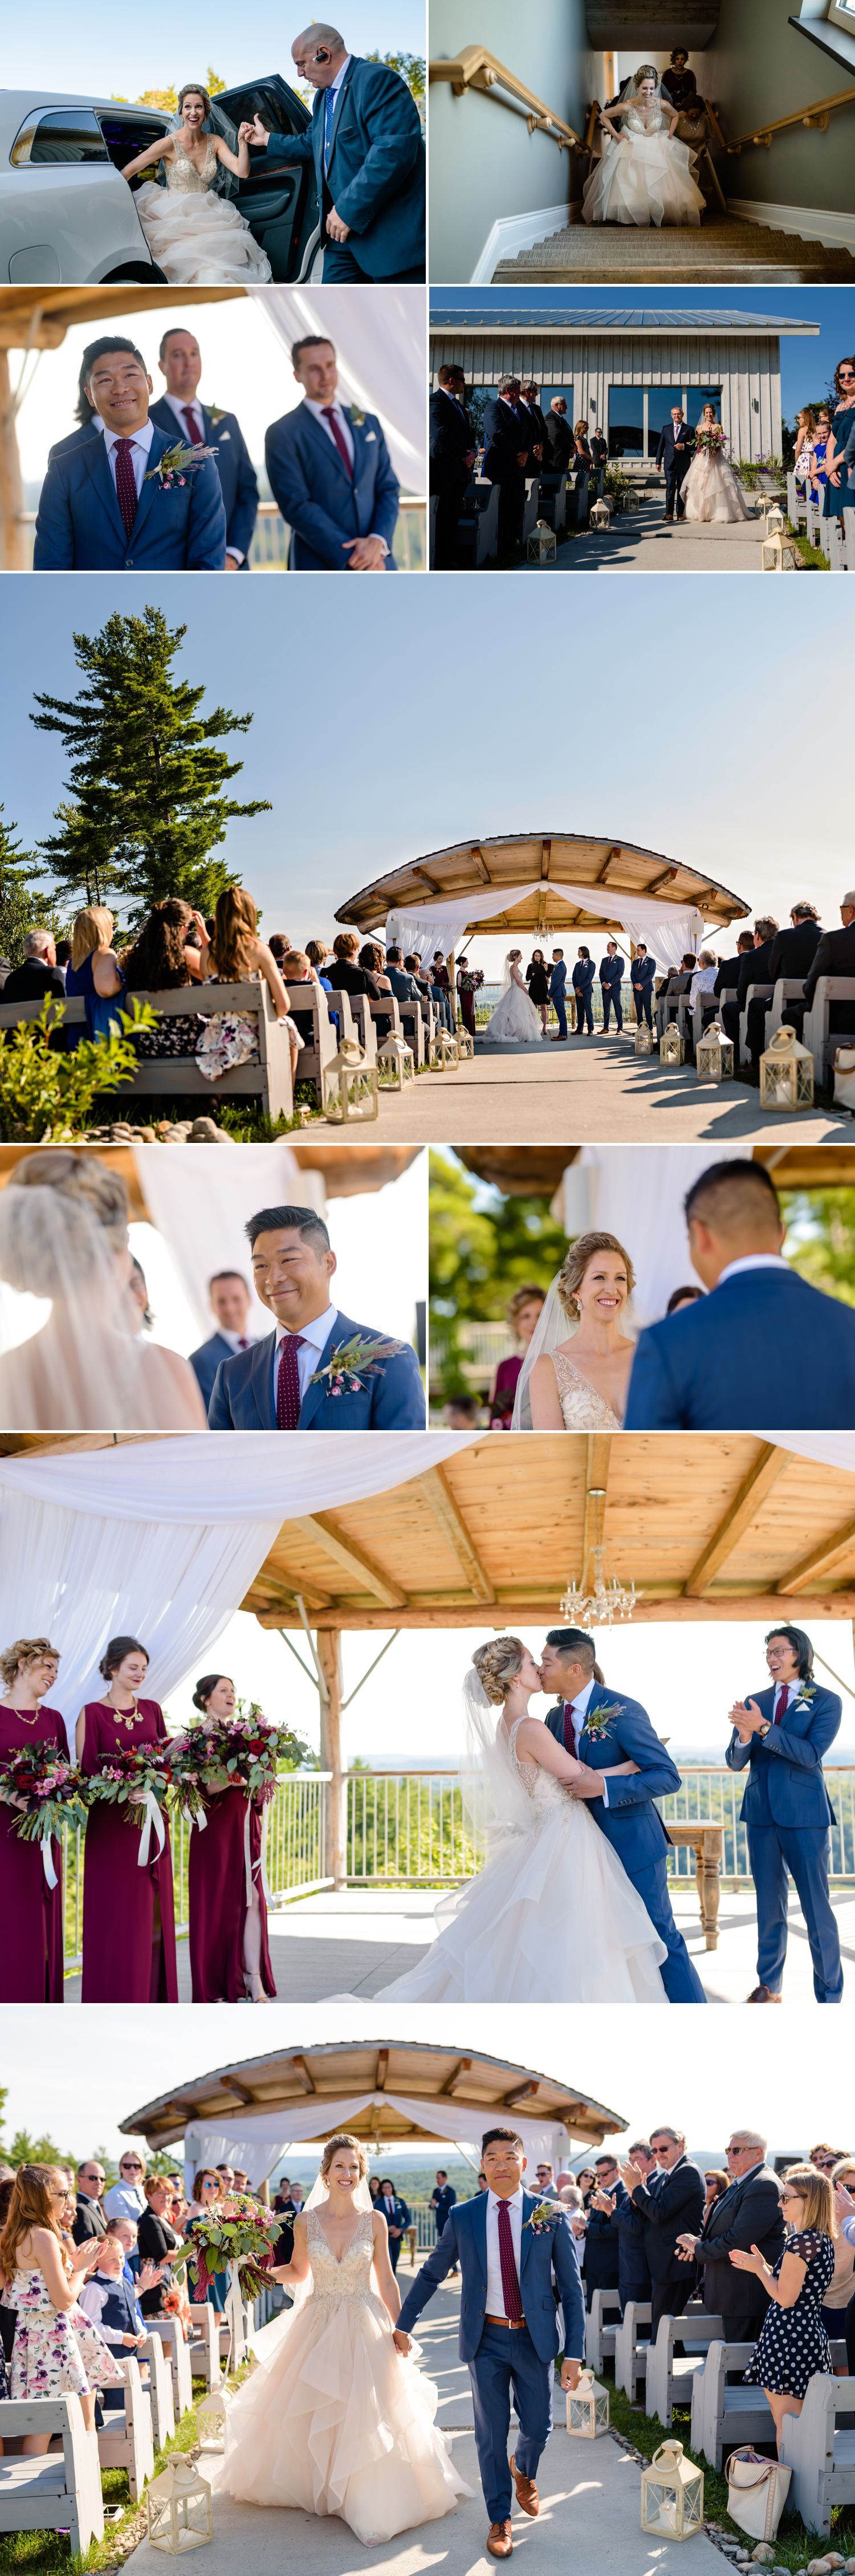 candid wedding ceremony moments during at le belvedere in wakefield quebec